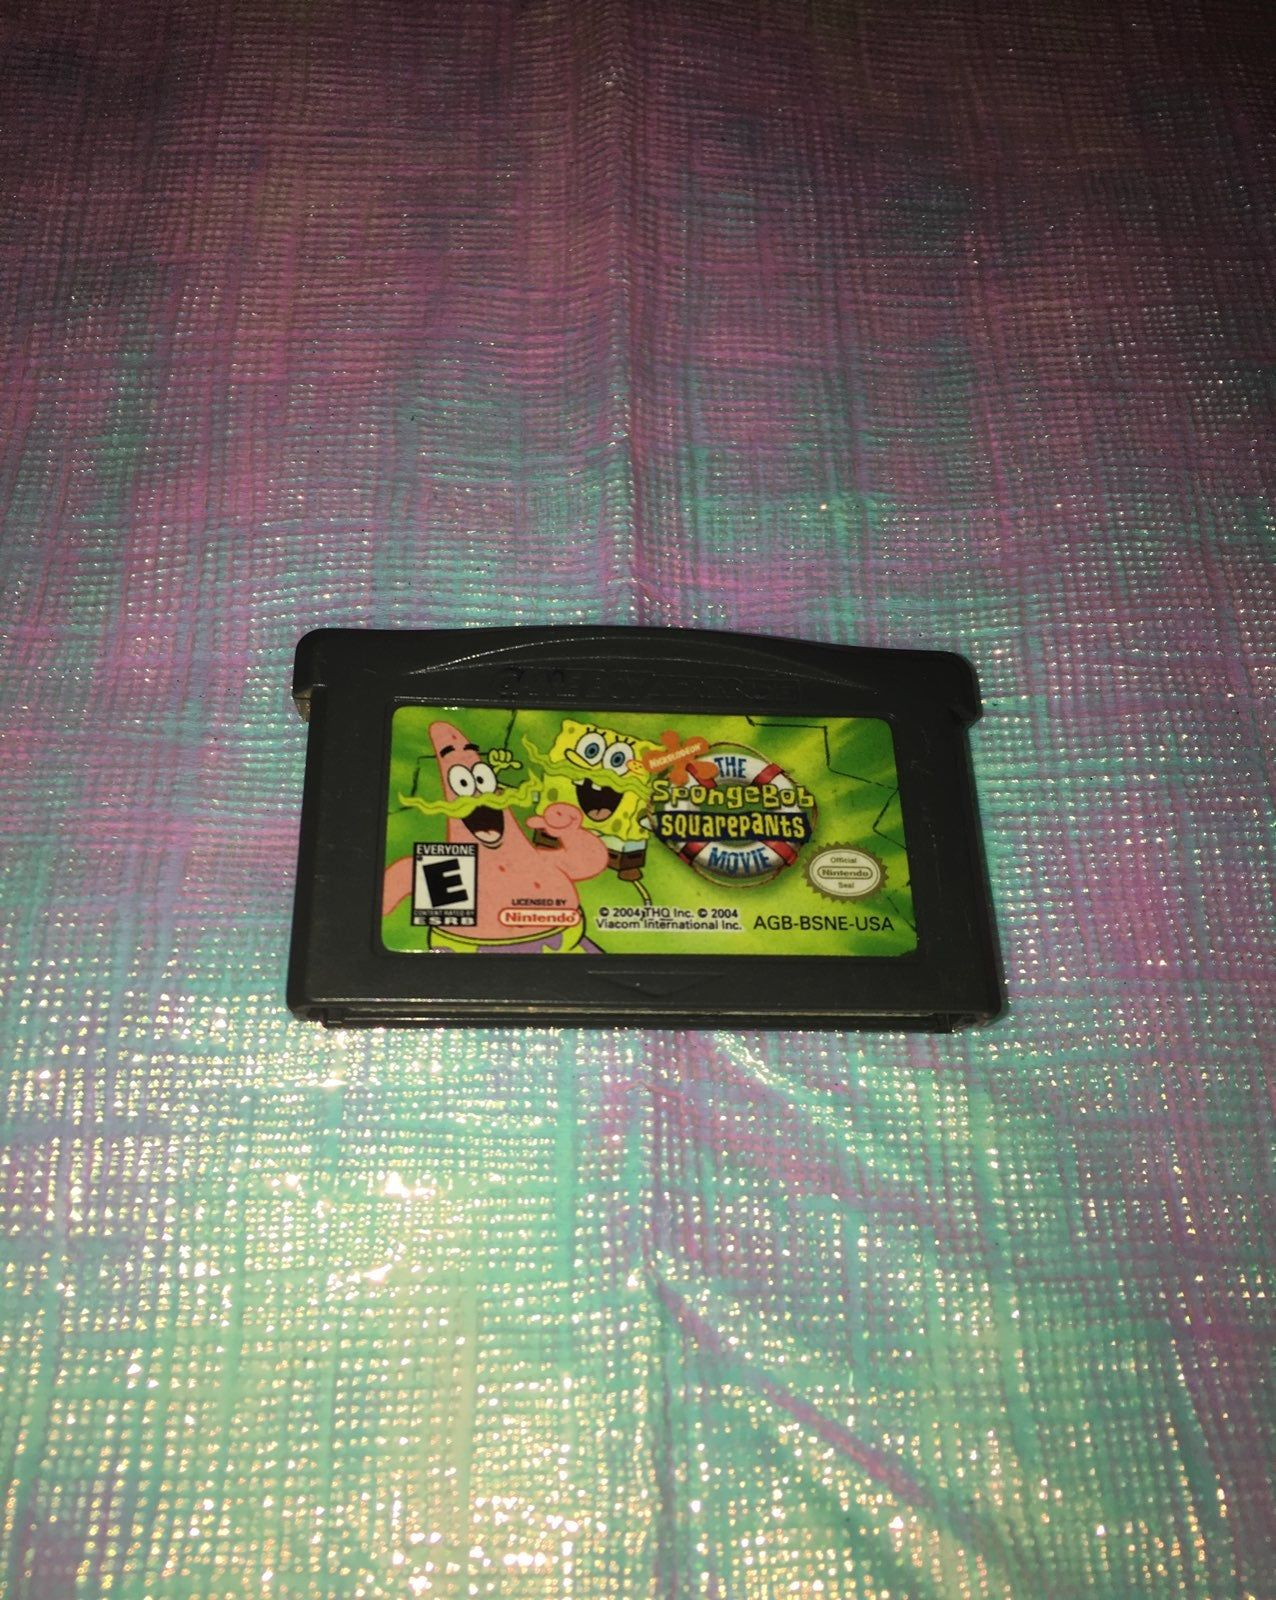 The SpongeBob SquarePants Movie Gameboy Advanced. Release